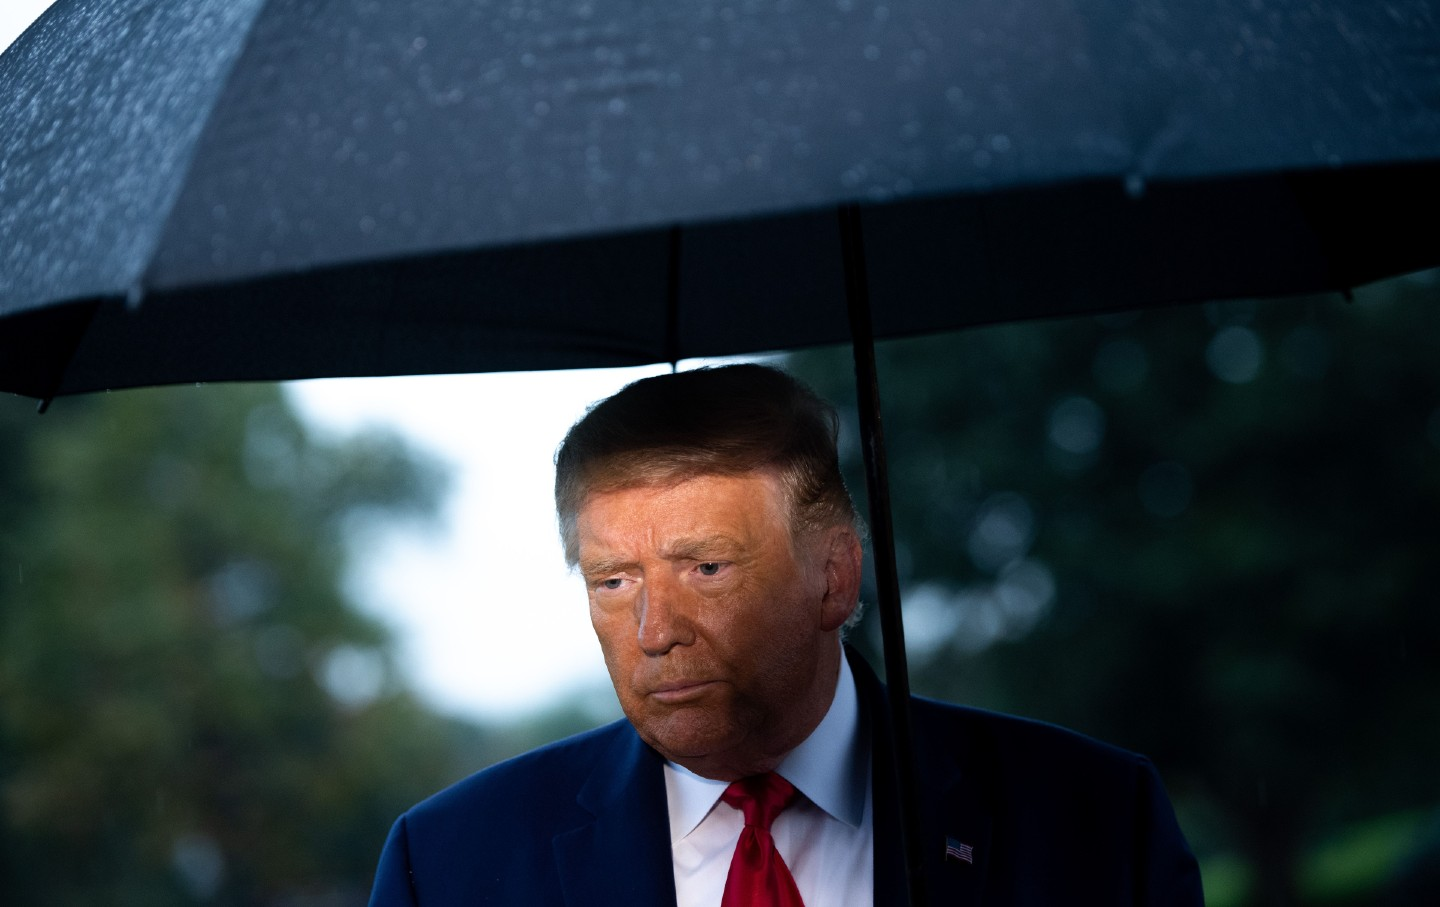 Donald Trump stands looking forlorn in the rain under a black umbrella